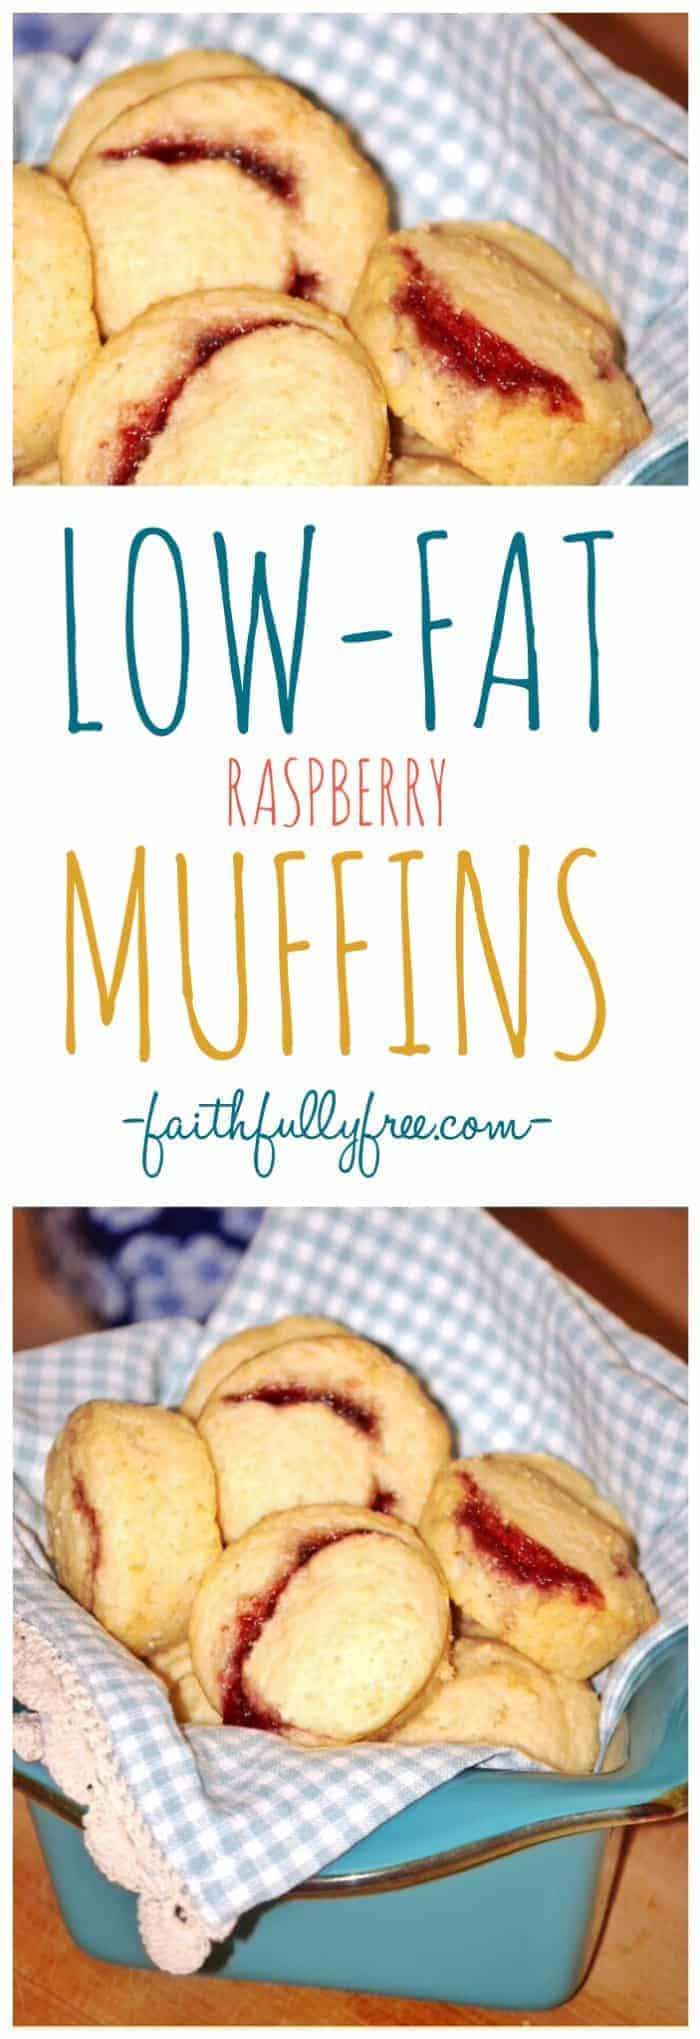 Low-fat Raspberry Muffins Recipe